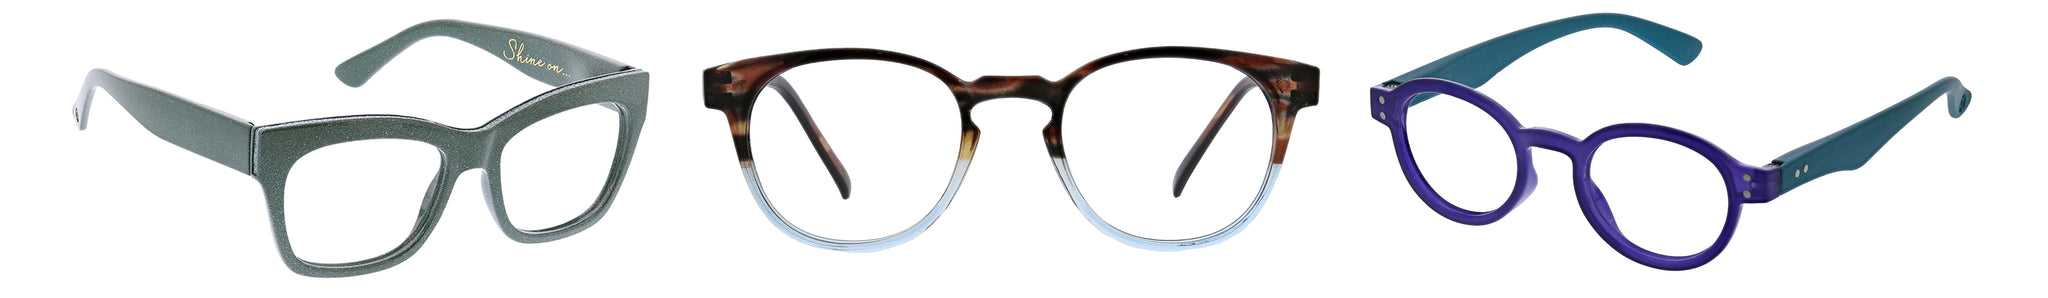 Peepers Shine On, Dynomite, and Book It! reading glasses on a white background